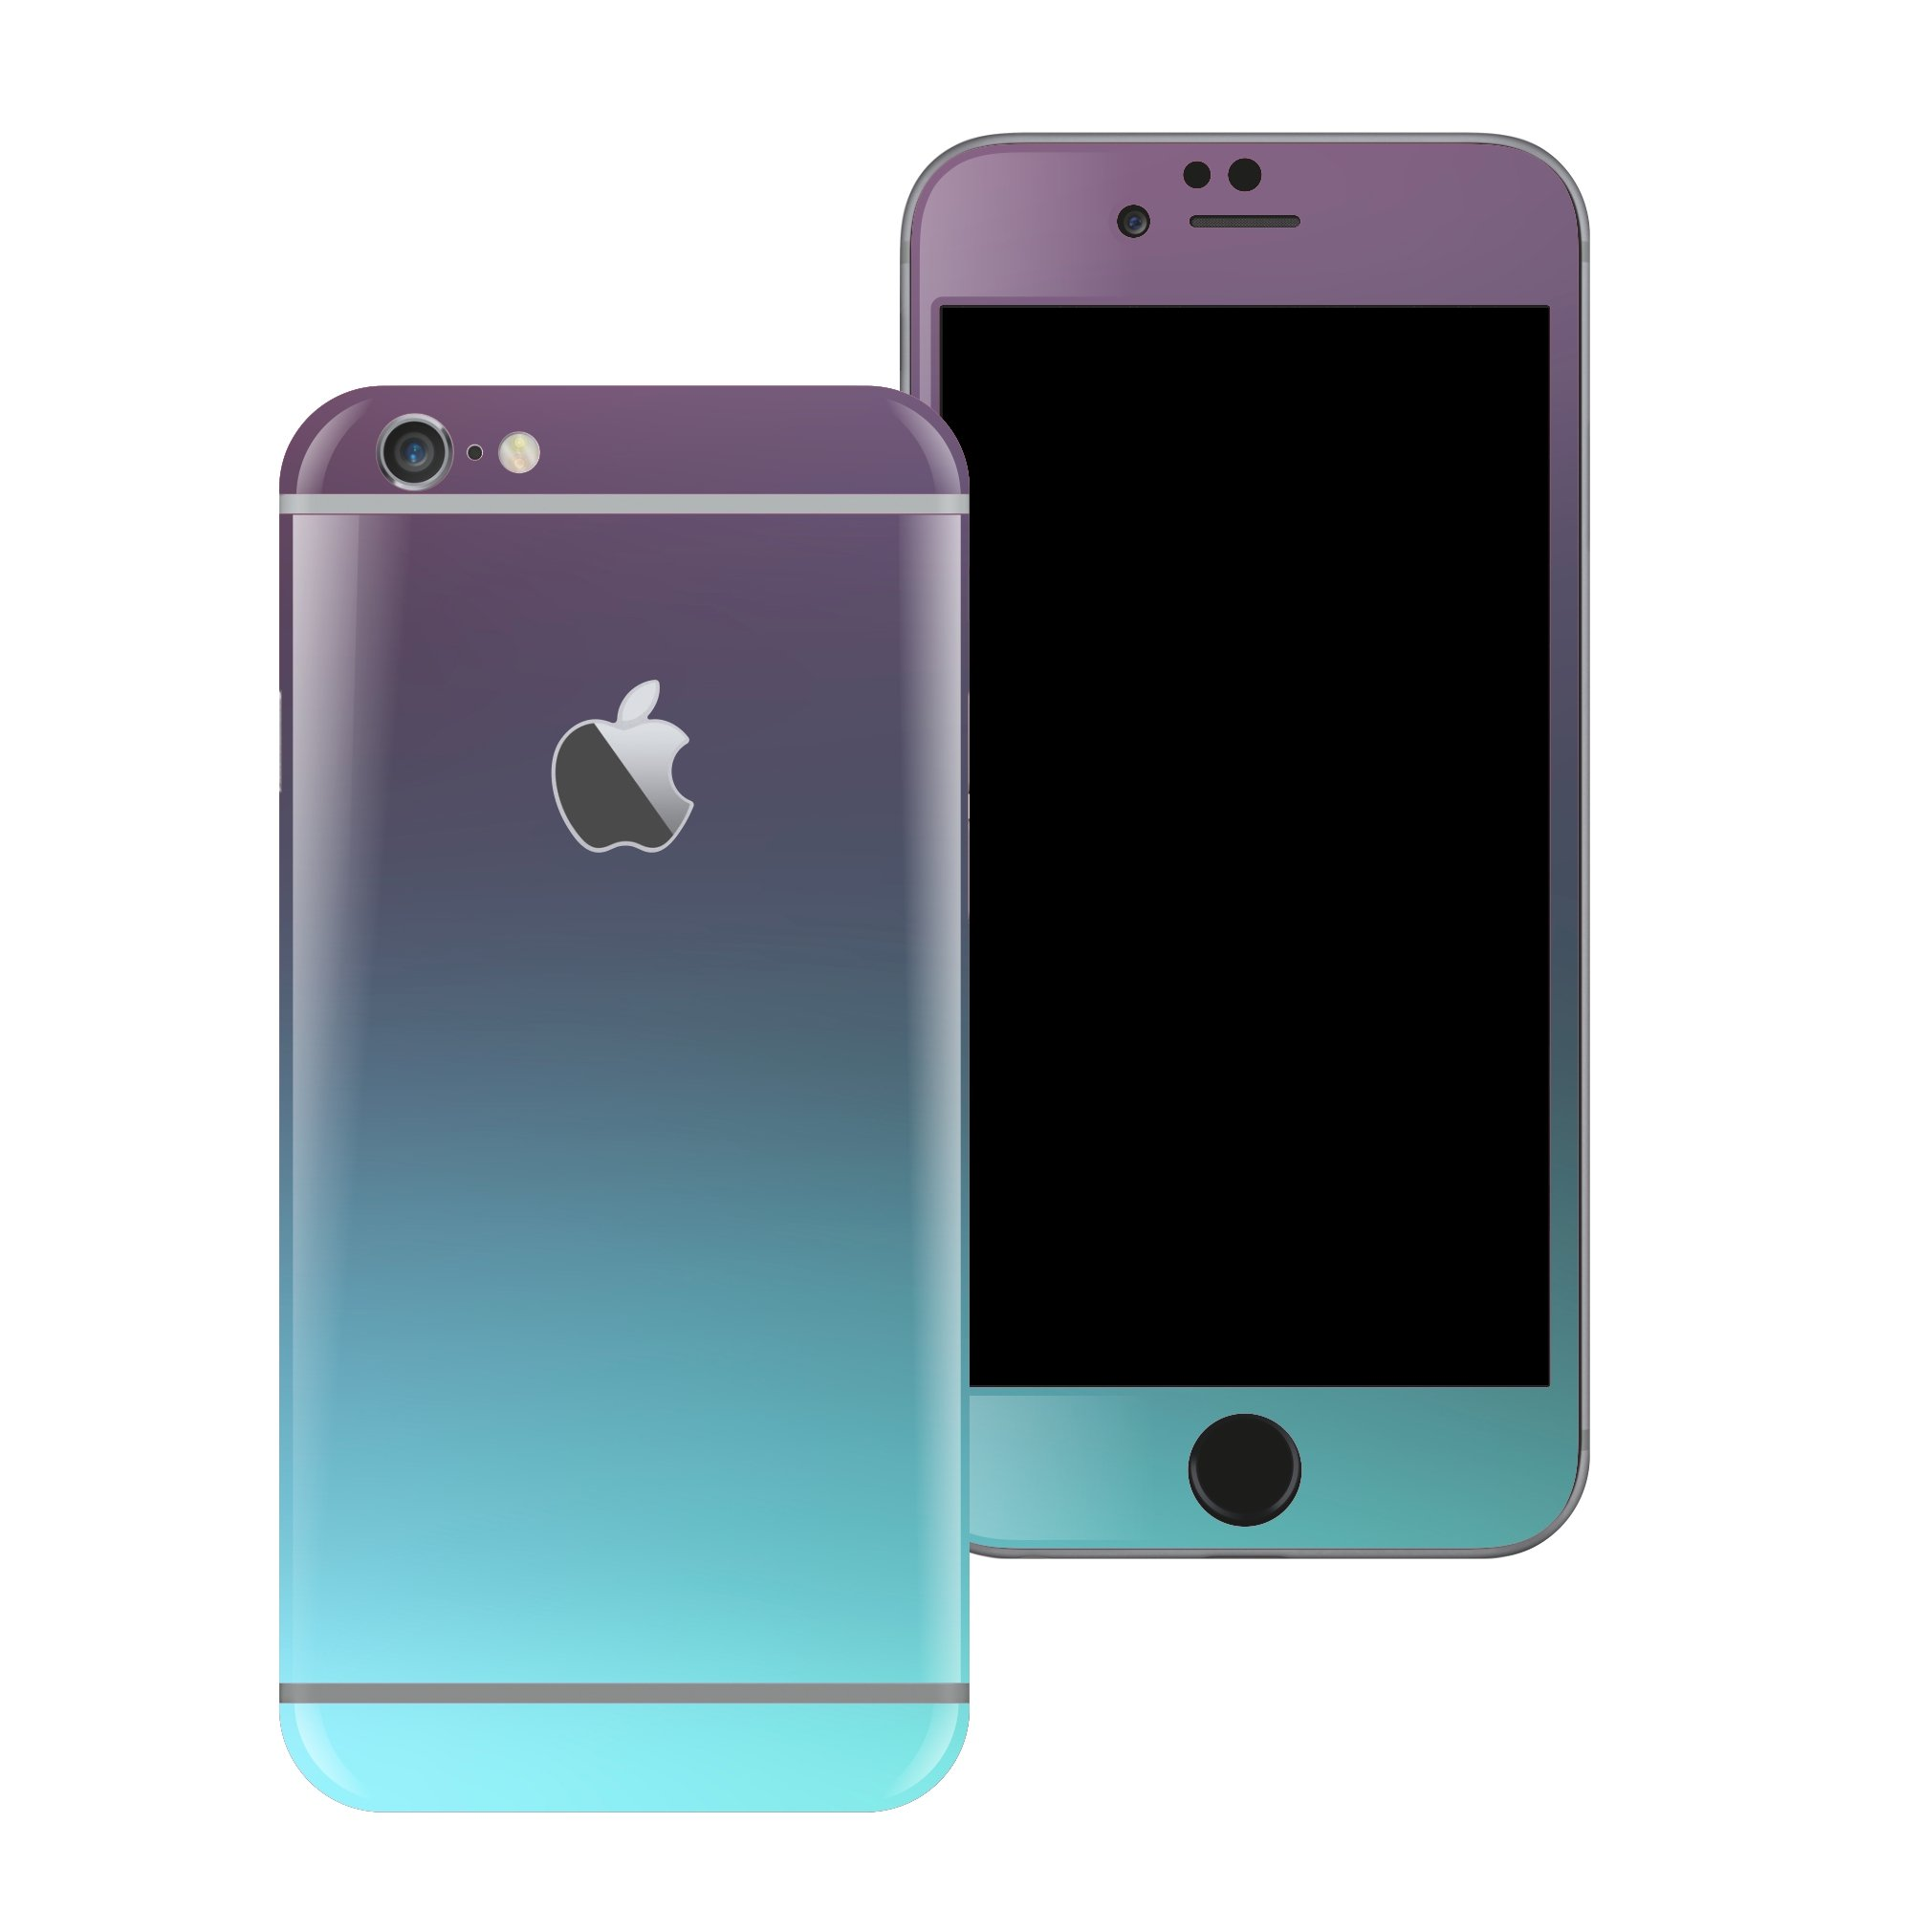 iPhone 6S Matt Metallic CHAMELEON Turquoise Lavender Skin Wrap Decal Cover by EasySkinz